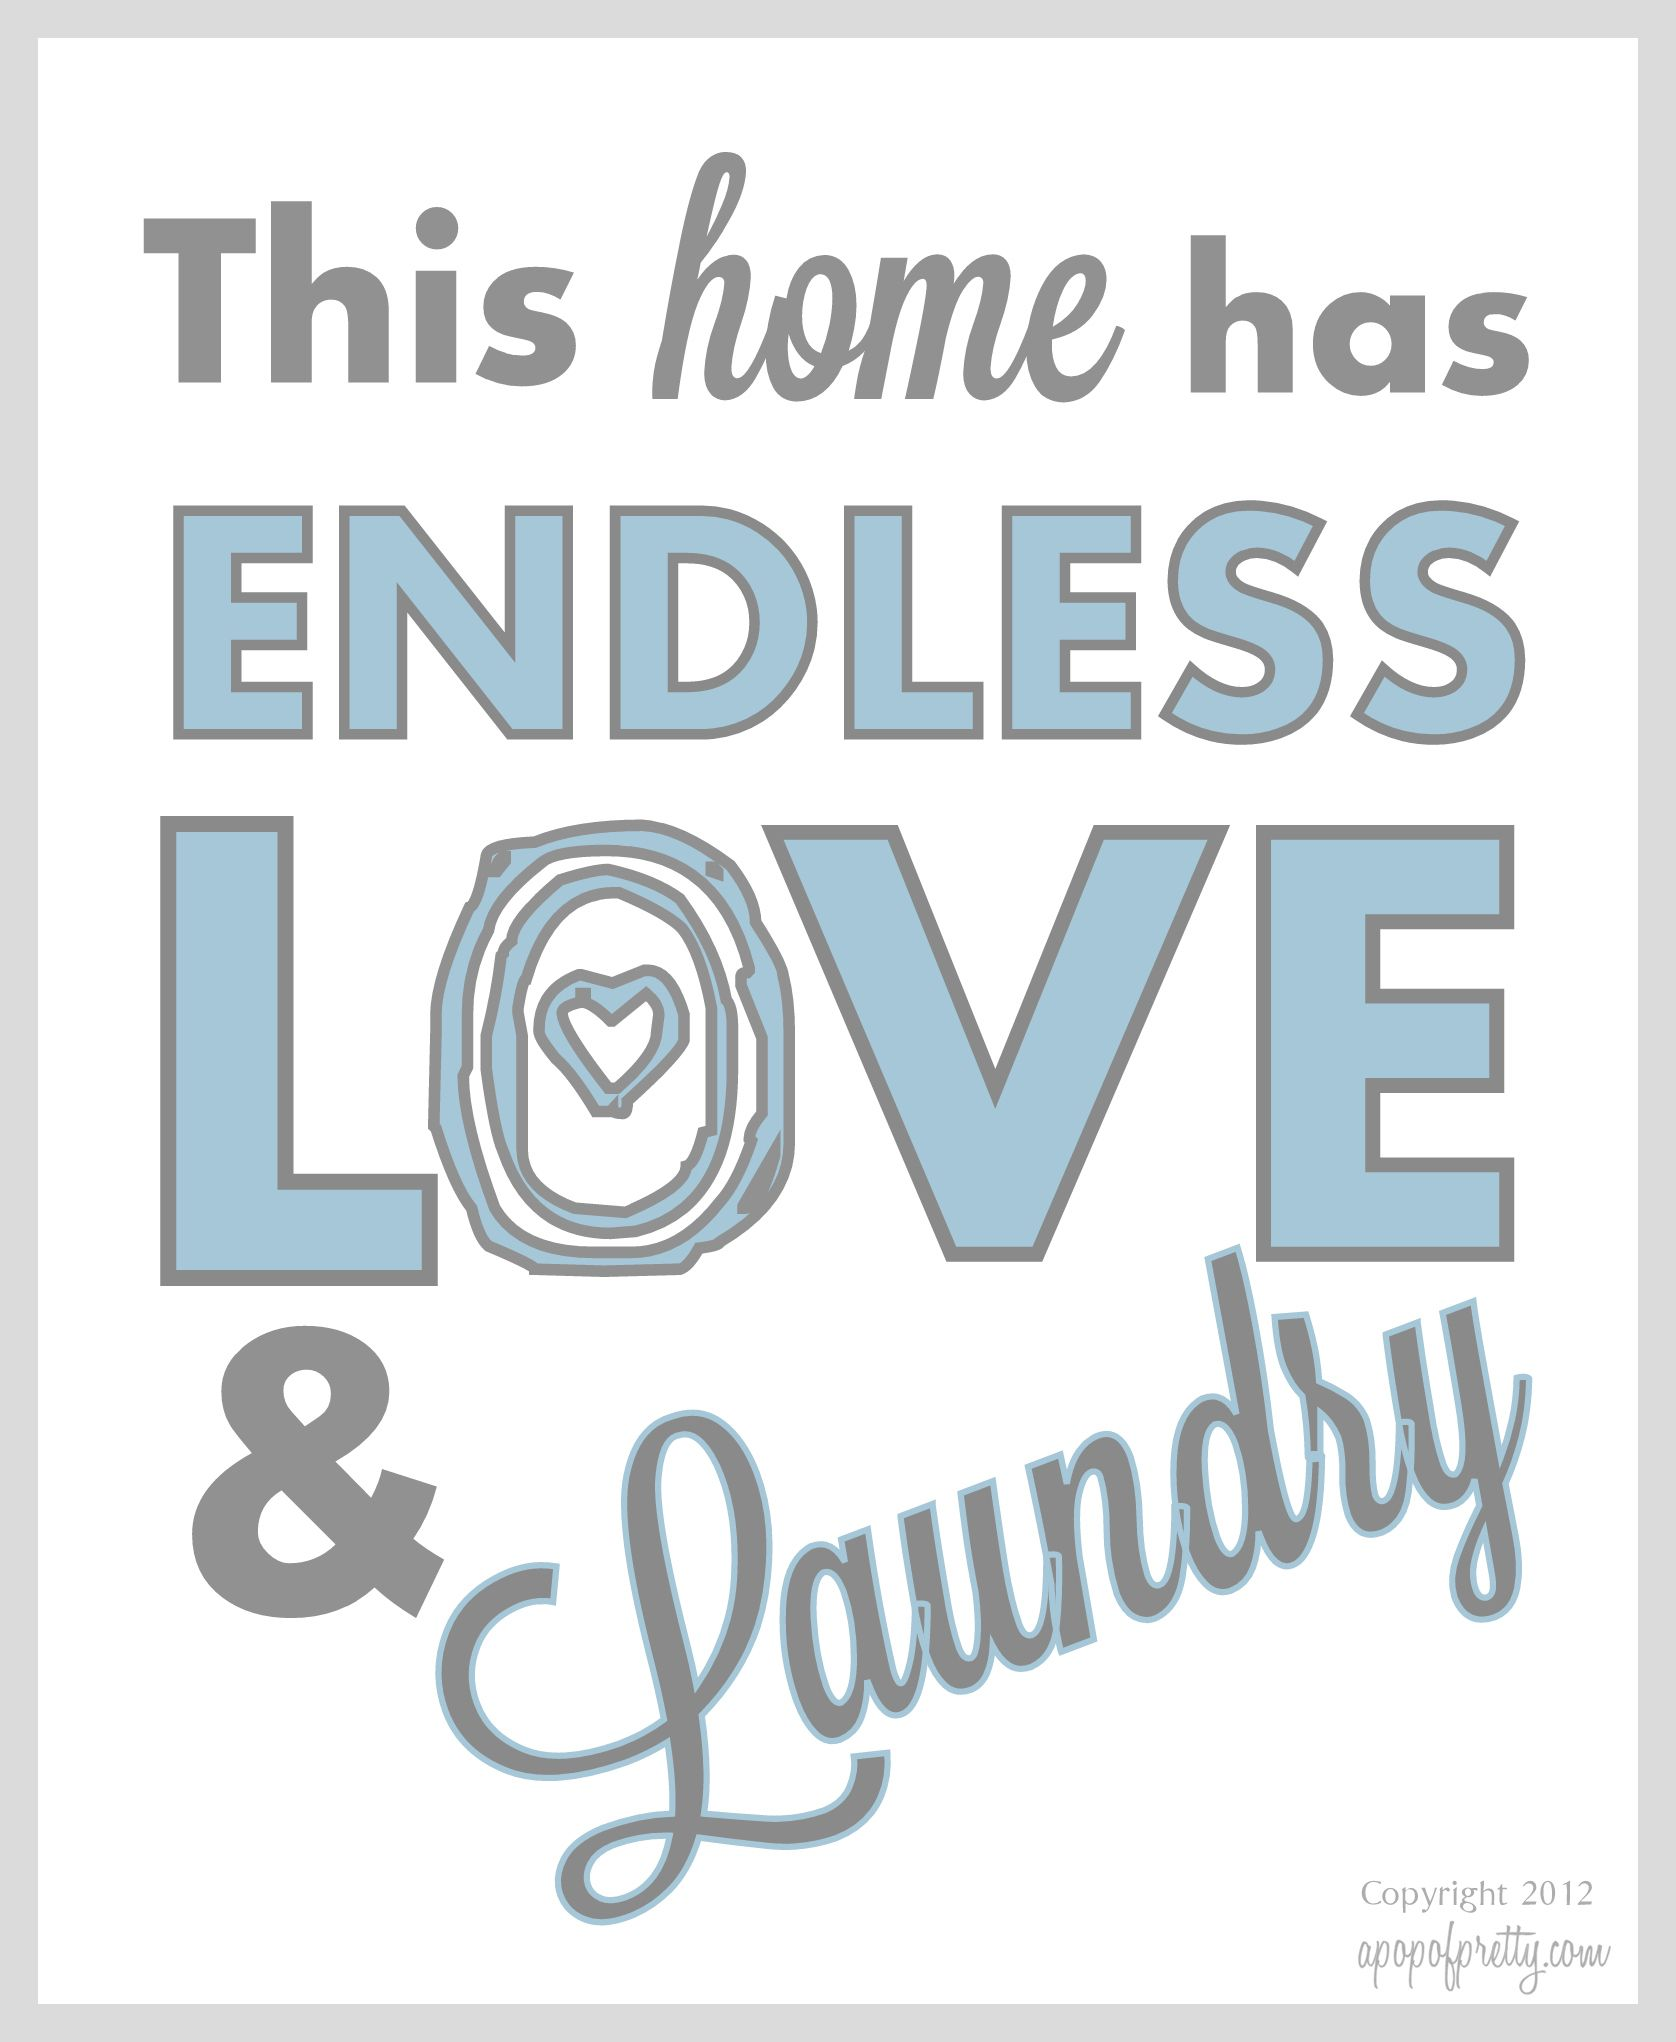 Free Printable Artwork Endless Love Laundry Now In More Color Choices Laundry Room Printables Free Printable Artwork Laundry Room